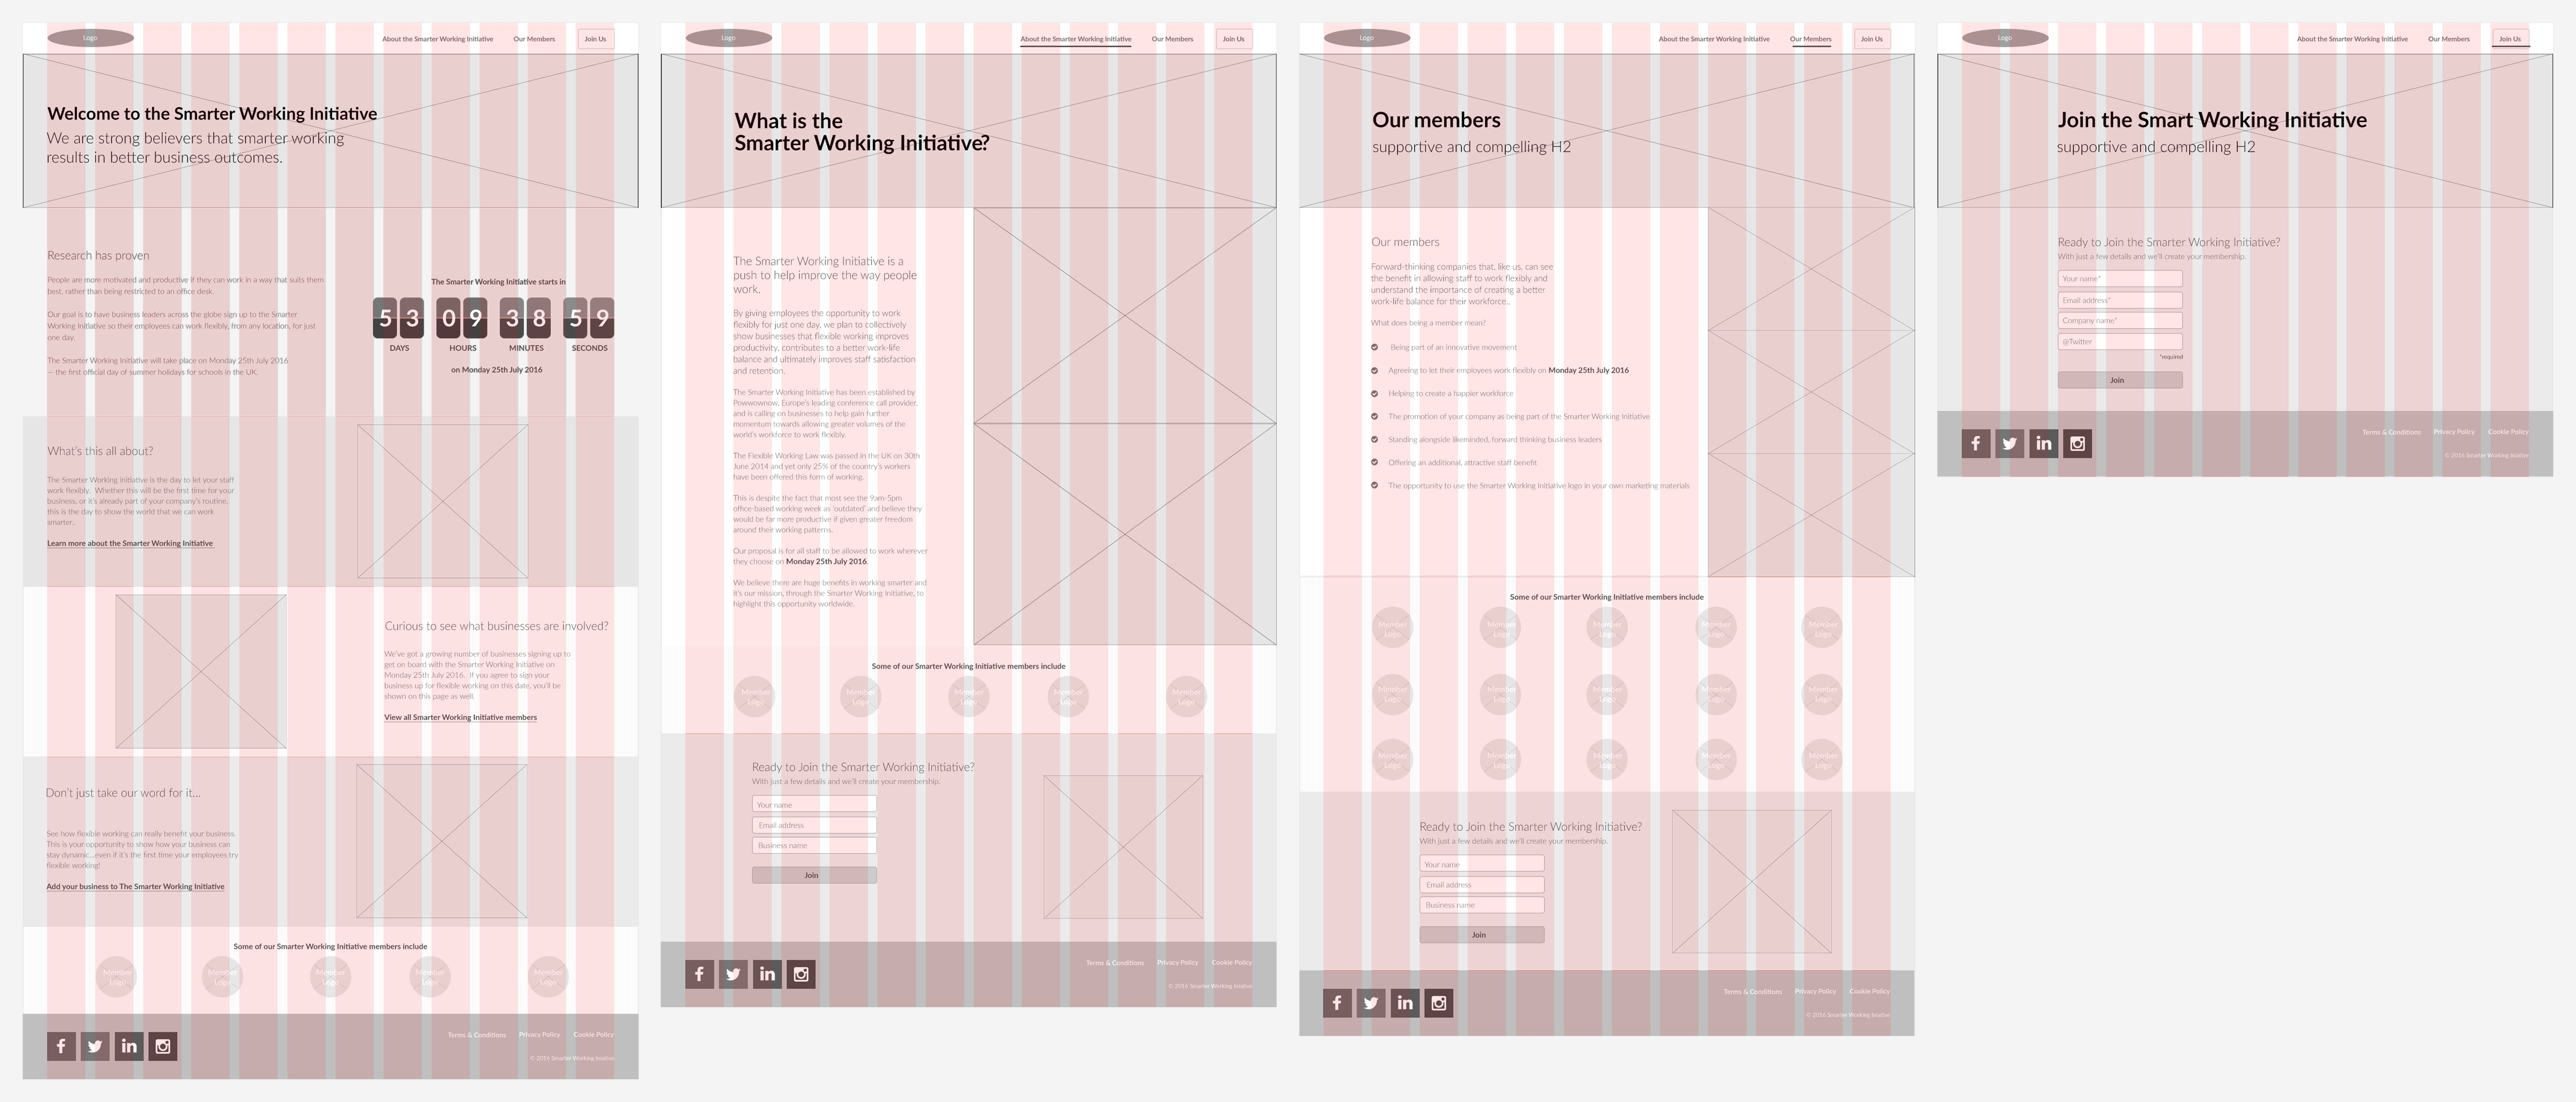 Responsive Web Design Desktop Tablet Mobile Smarter Working Initiative — Wireframe